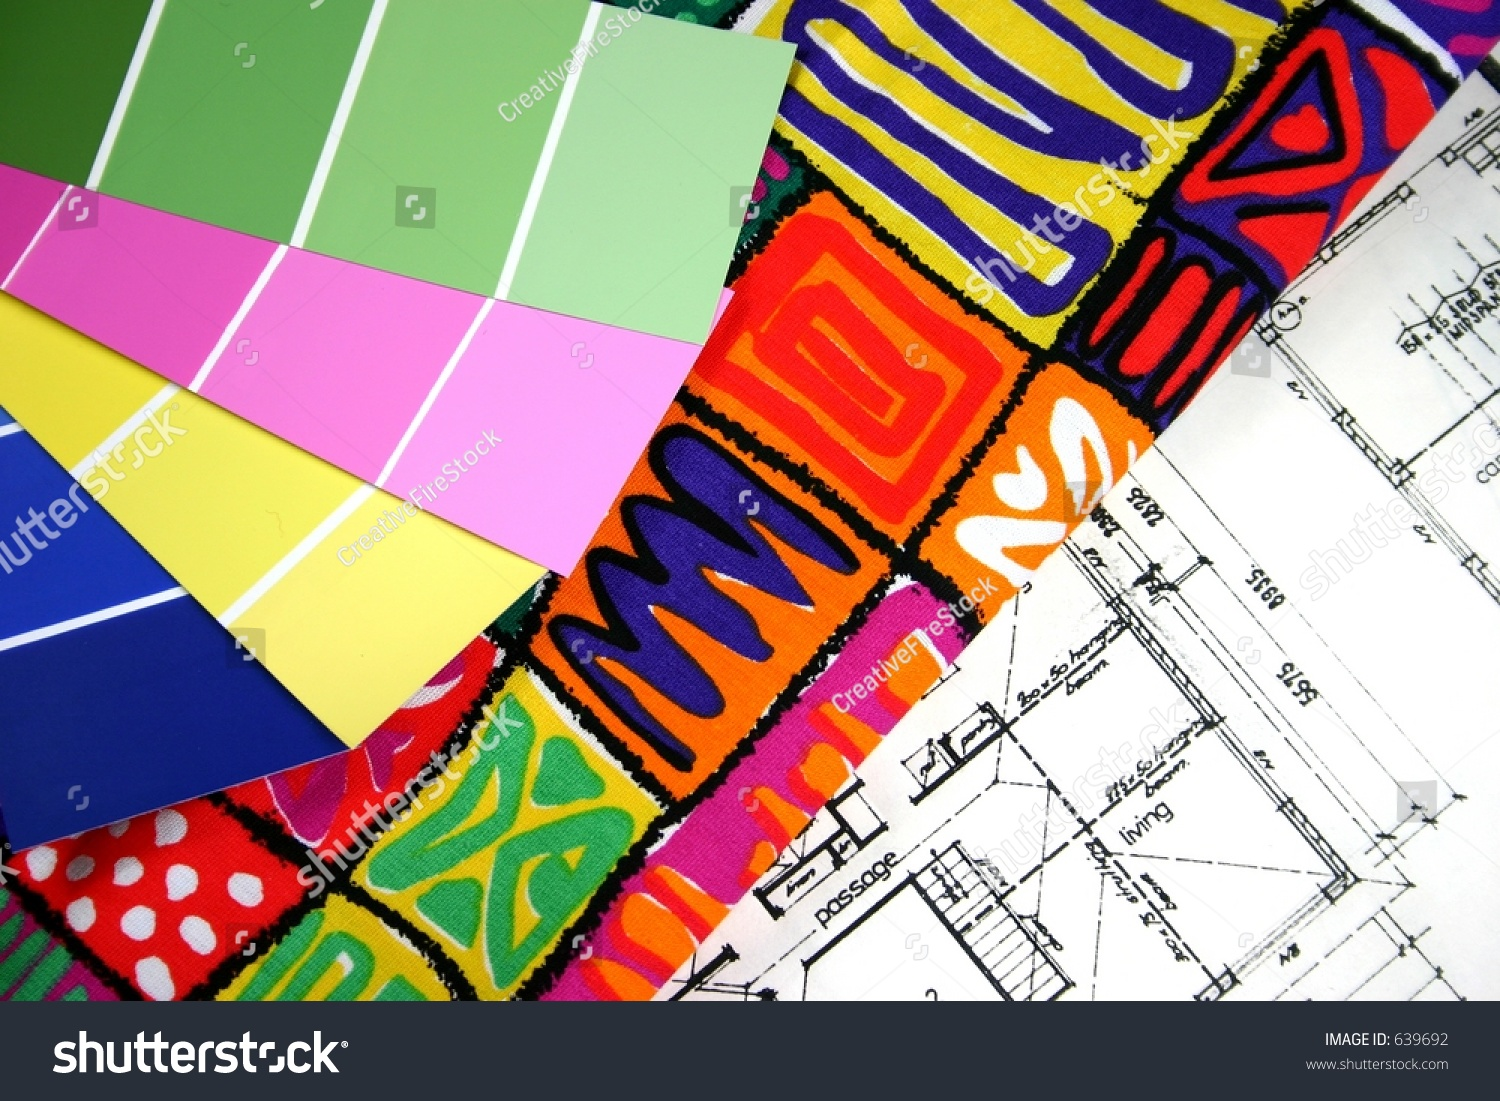 Home Decorating Samples Of Paint And Fabrics With House Plan In Background Stock Photo 639692